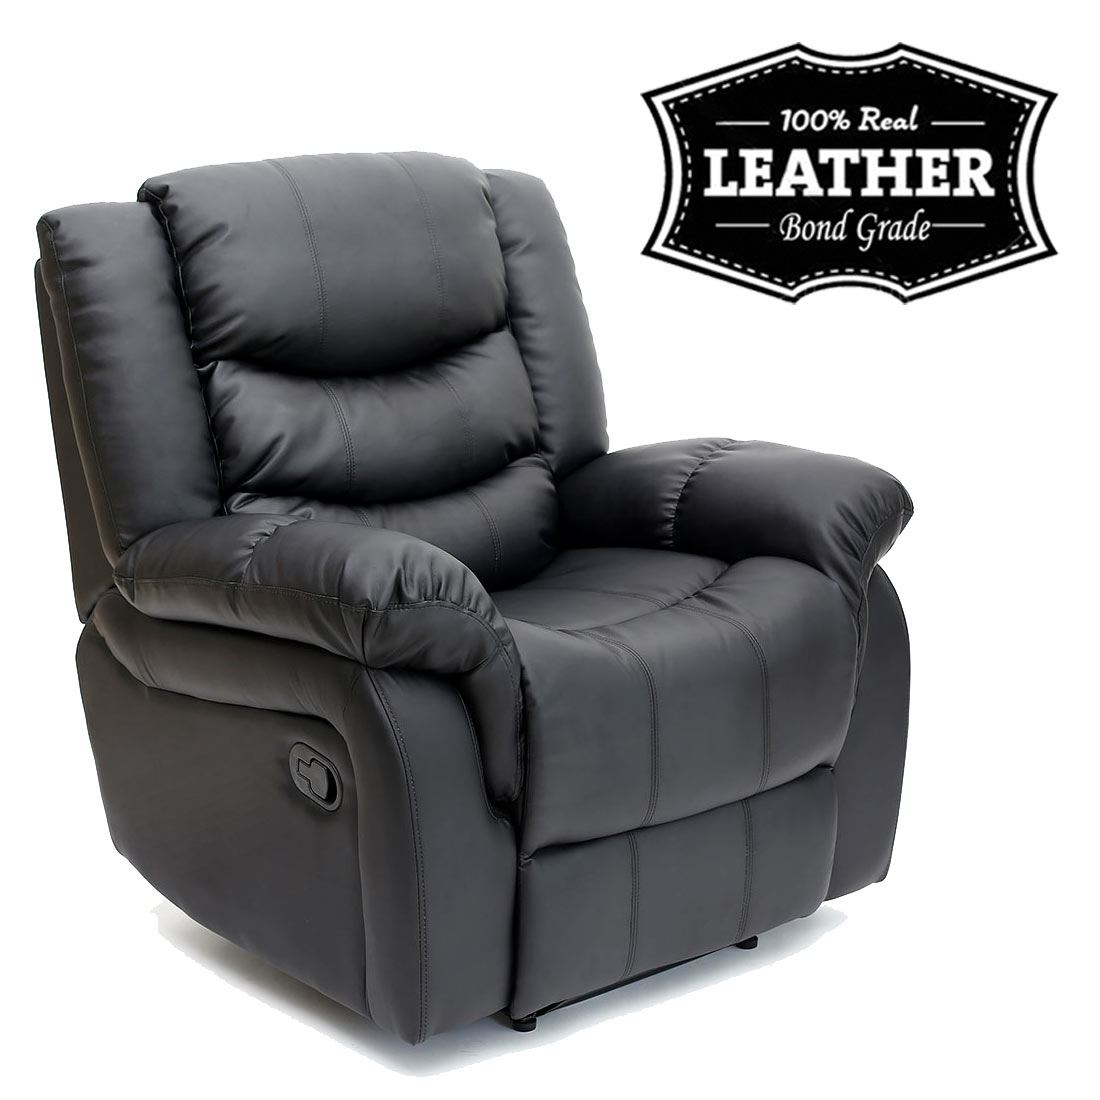 SEATTLE-LEATHER-RECLINER-ARMCHAIR-SOFA-HOME-LOUNGE-CHAIR-  sc 1 st  eBay & SEATTLE LEATHER RECLINER ARMCHAIR SOFA HOME LOUNGE CHAIR RECLINING ... islam-shia.org